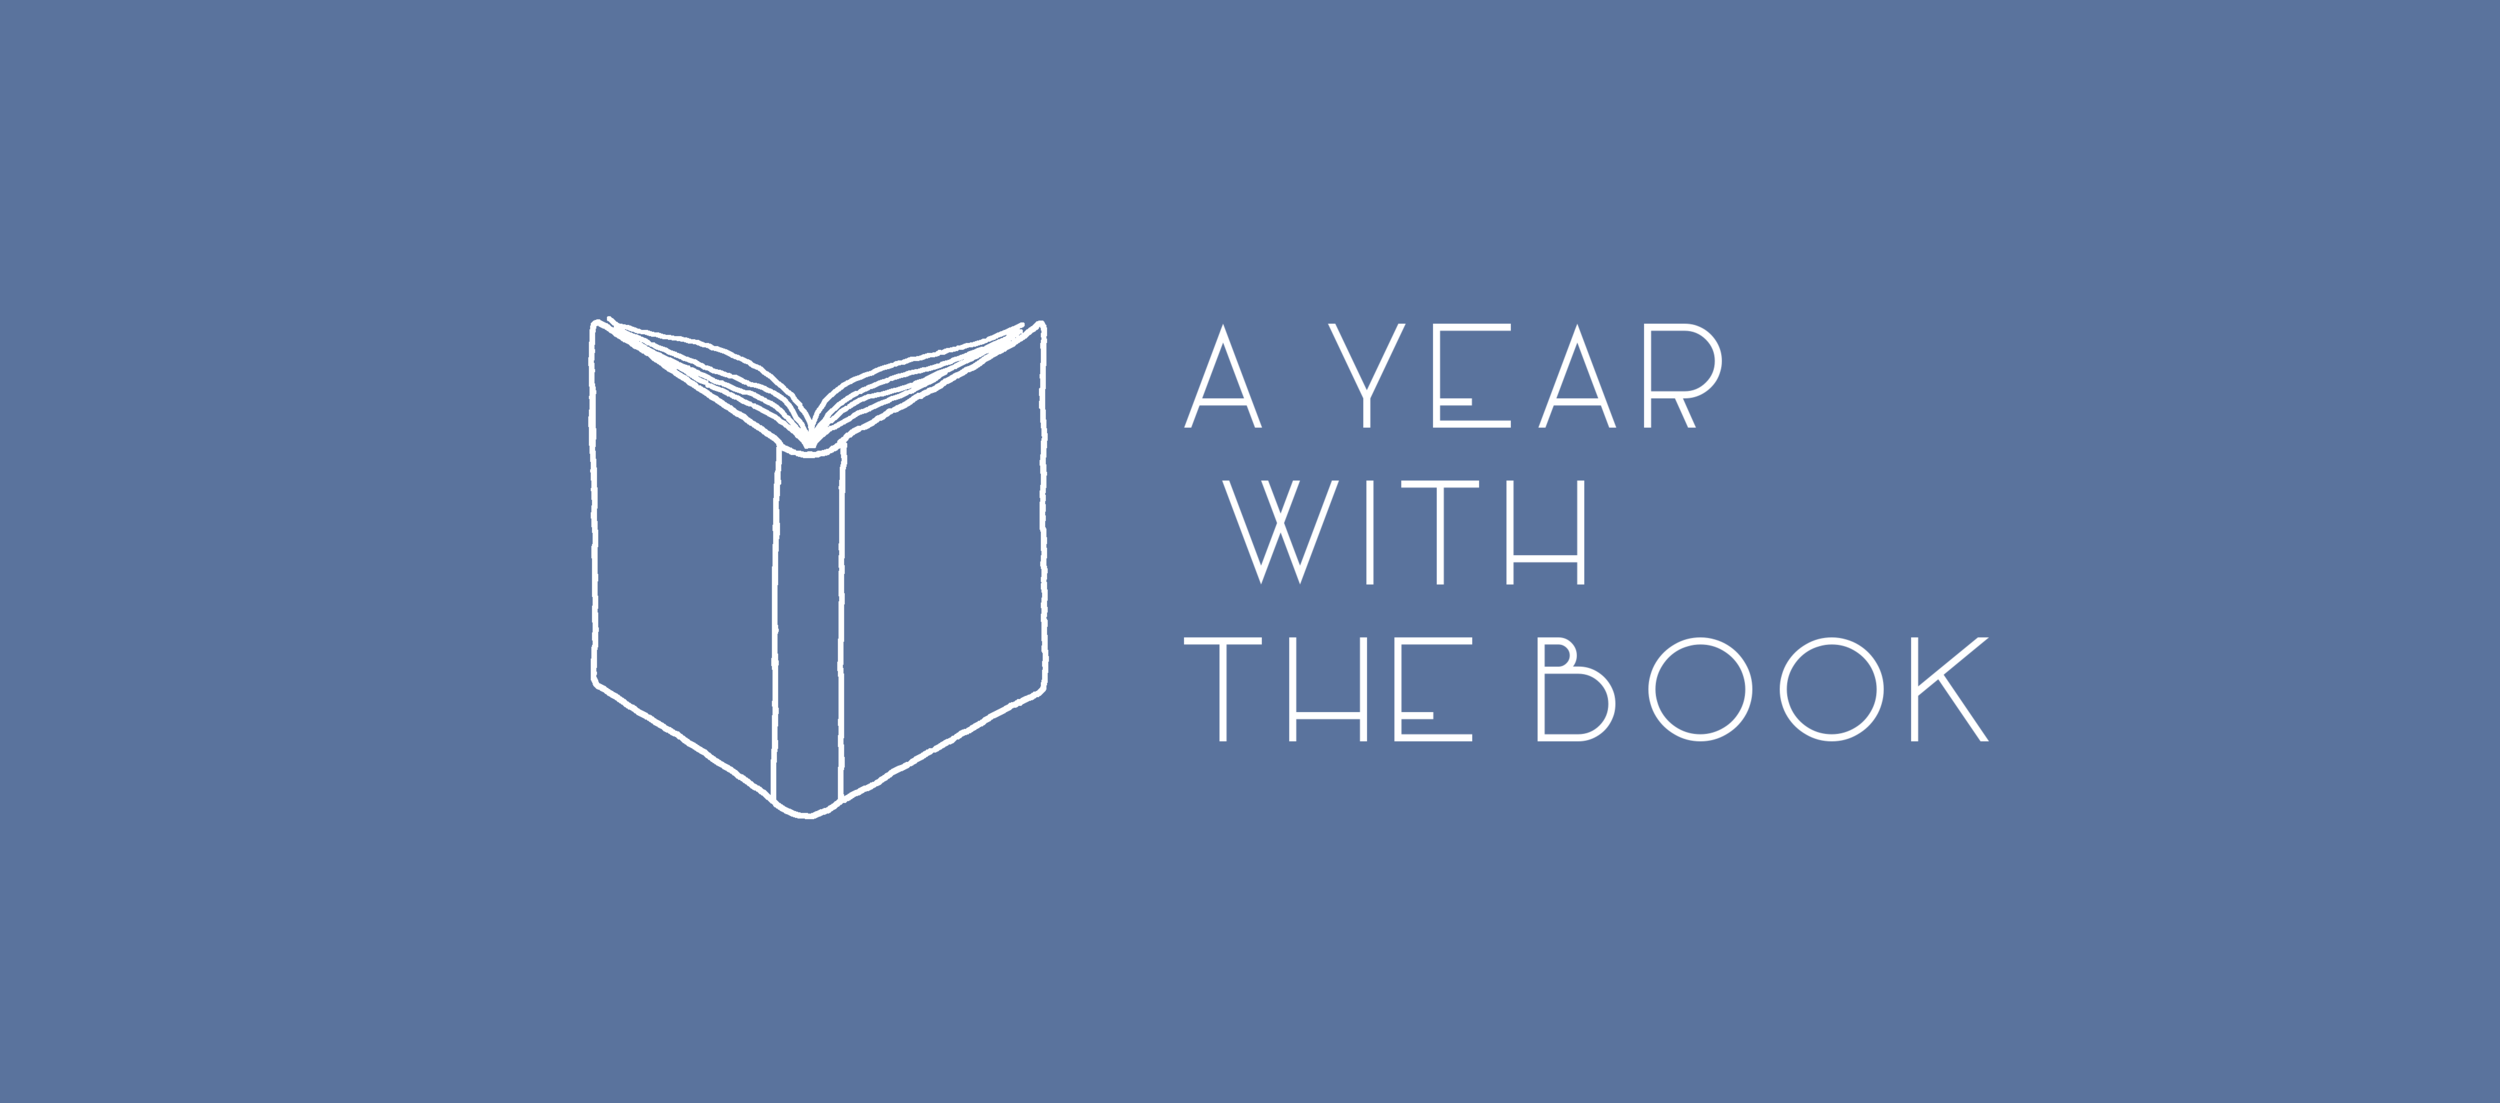 A year with the book front website.png